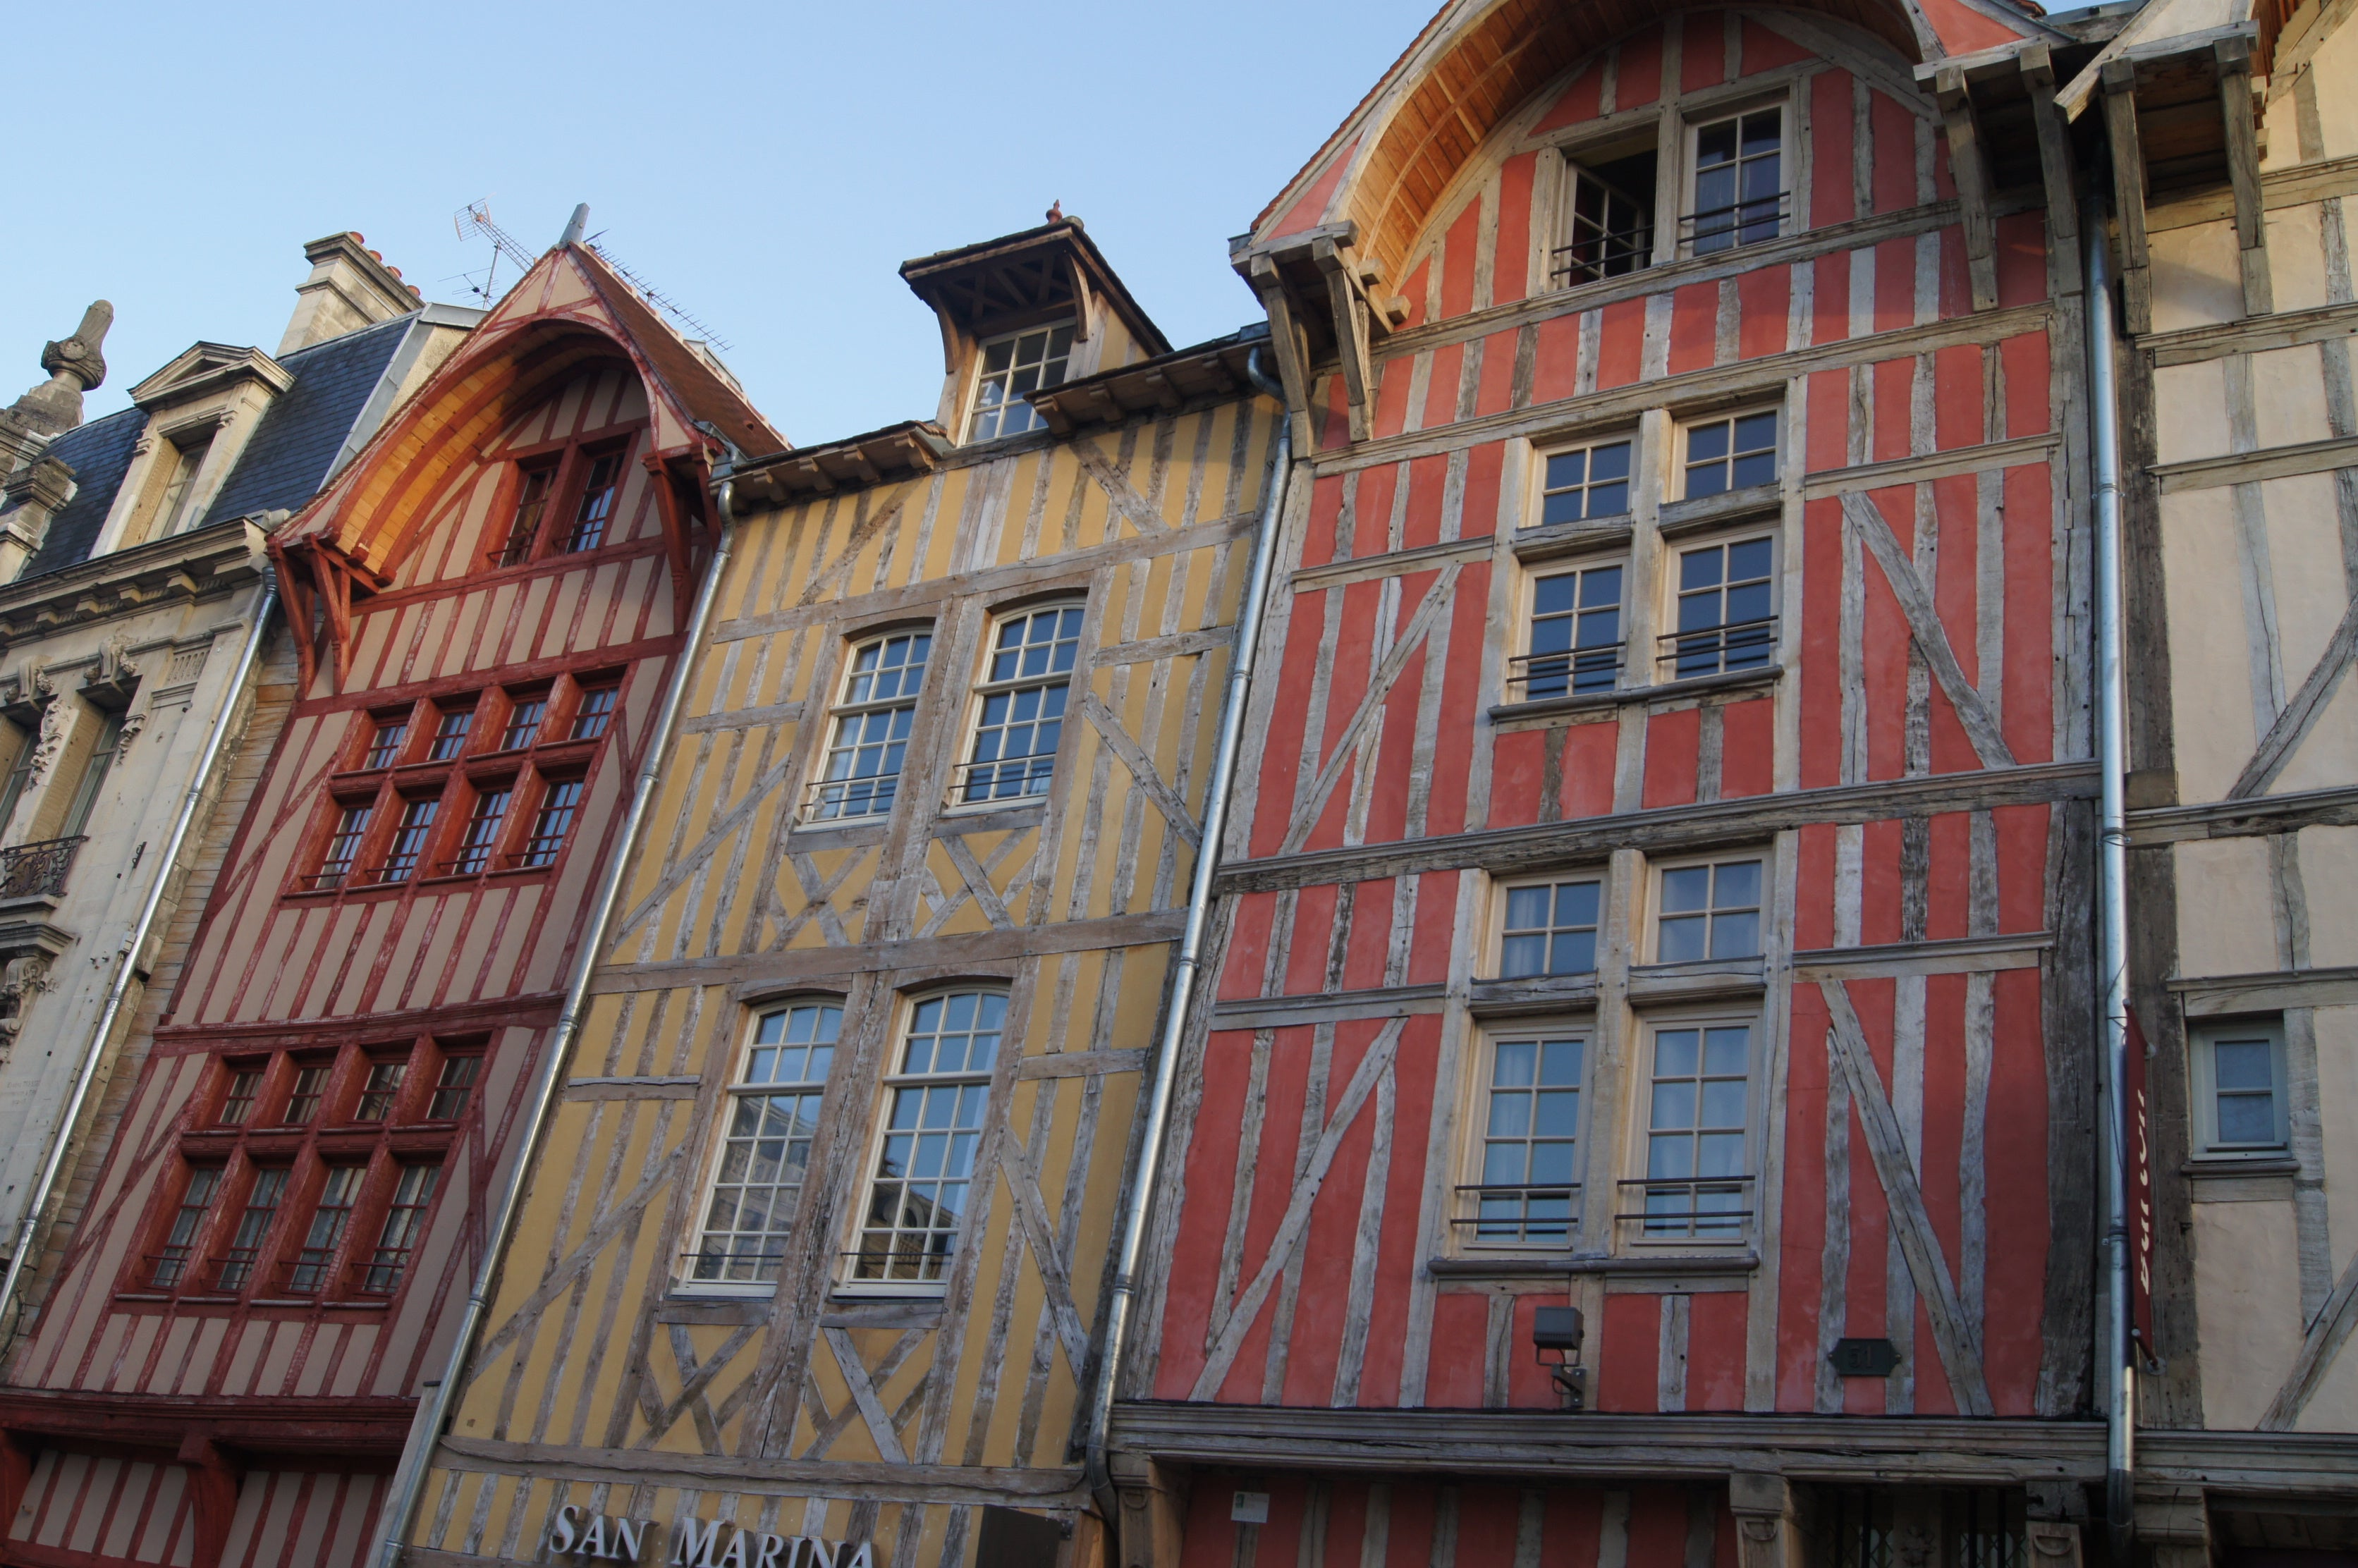 Rosso a Troyes